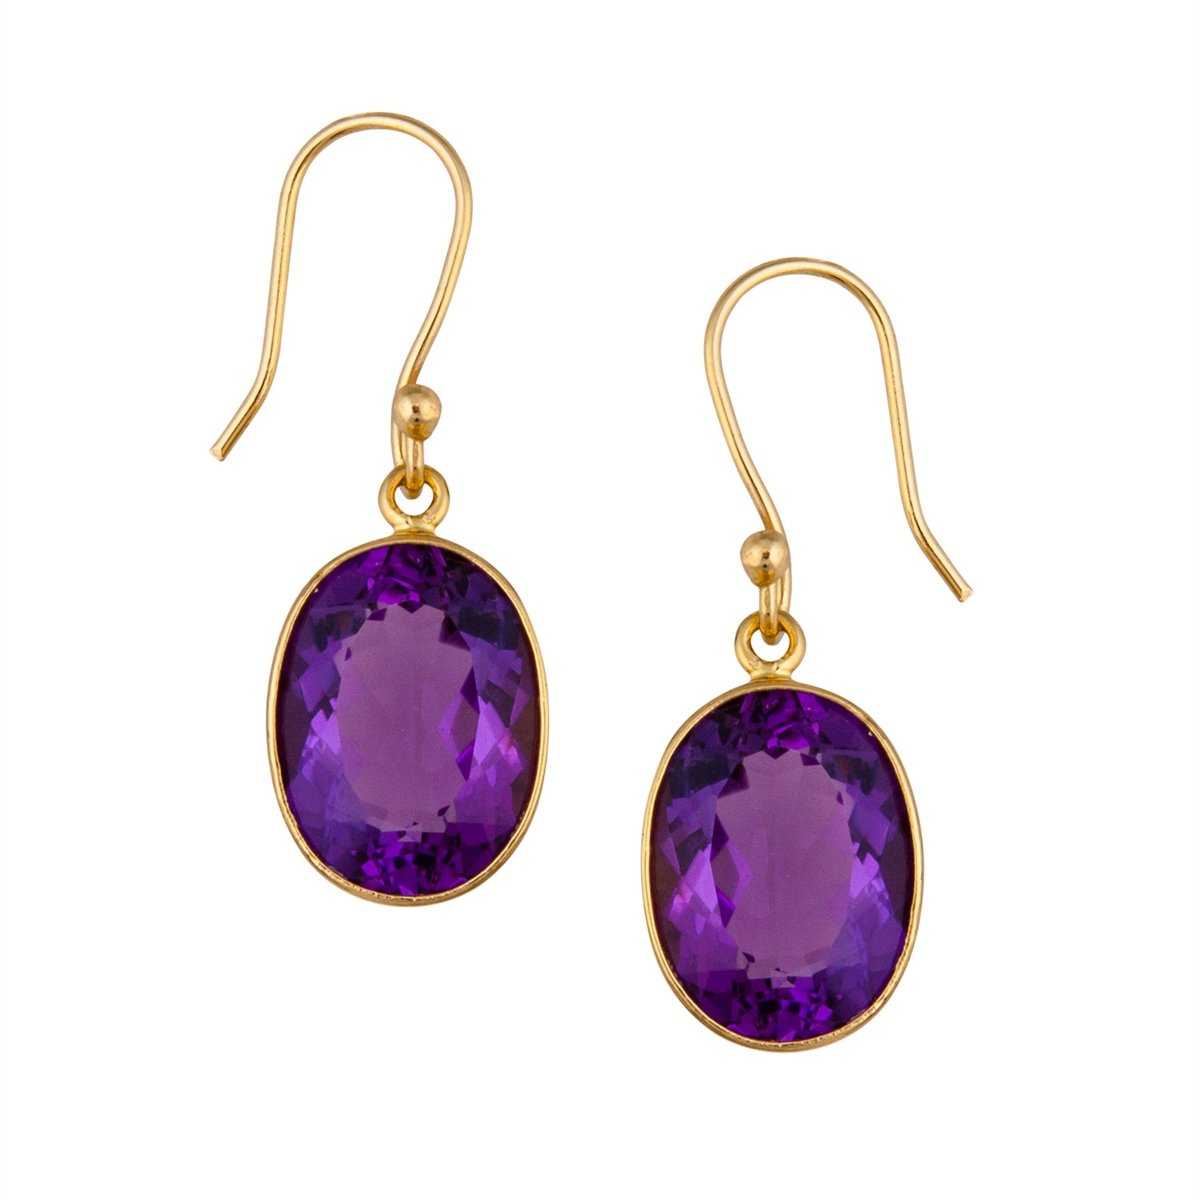 Alchemia Amethyst Drop Earrings